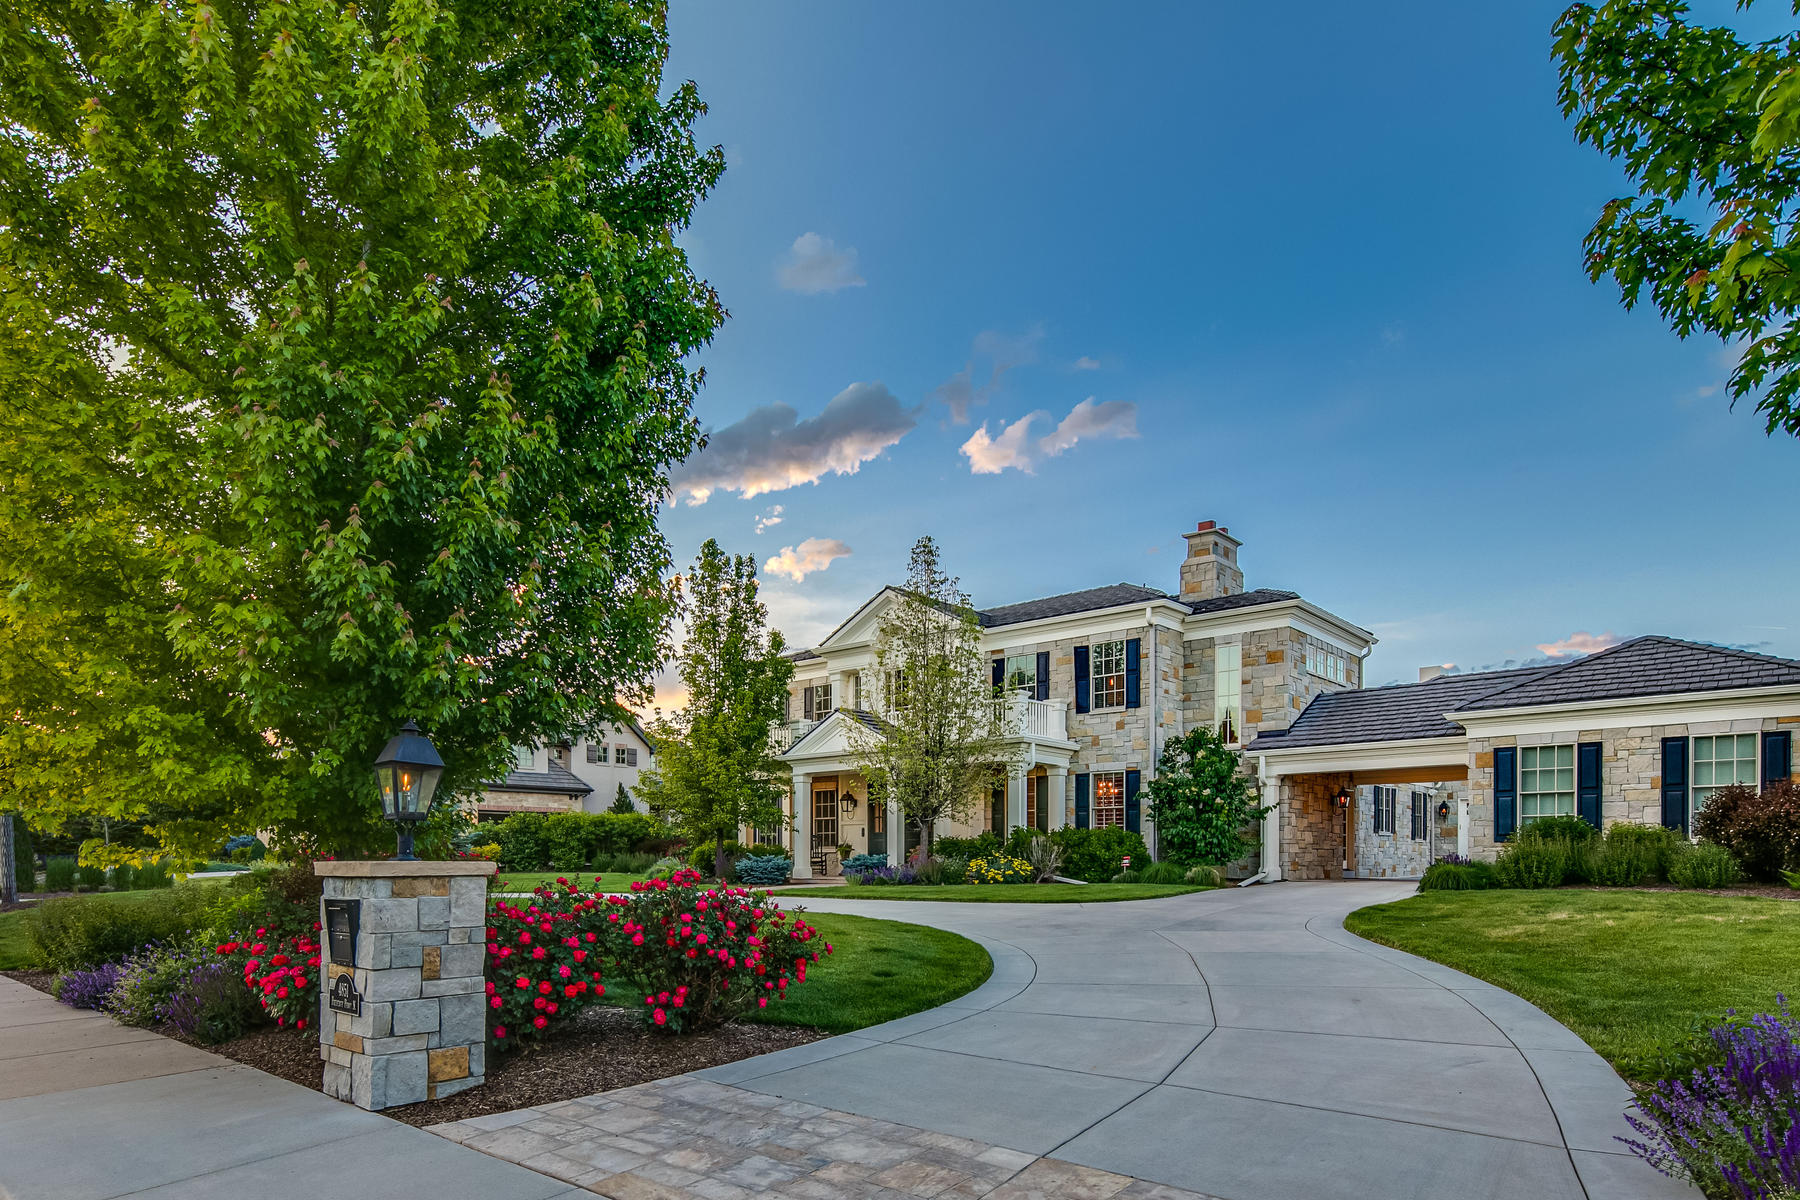 Casa unifamiliar en venta en/de 4851 Preserve Parkway North, Greenwood Village, Colorado ,80121  , EUA